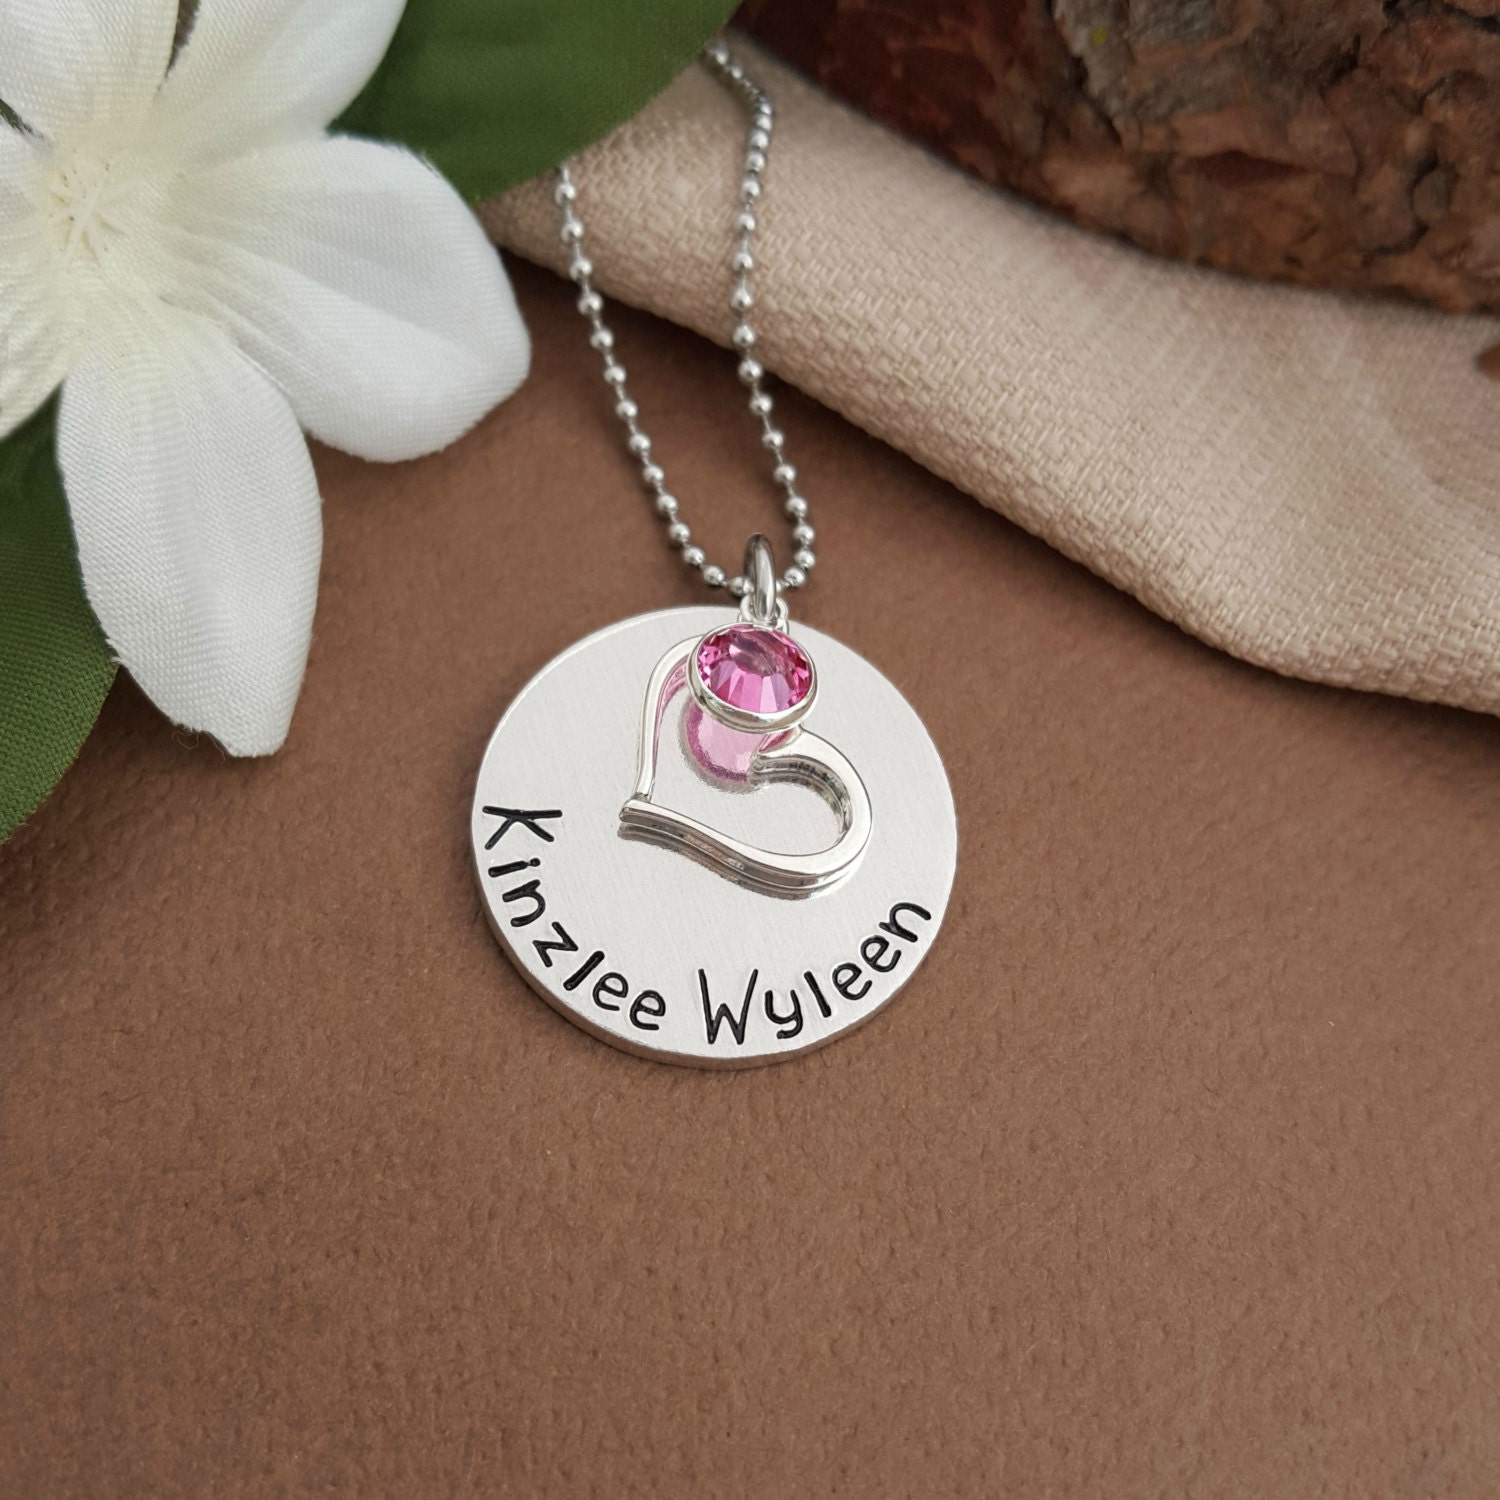 new necklace personalized baby name necklace gift